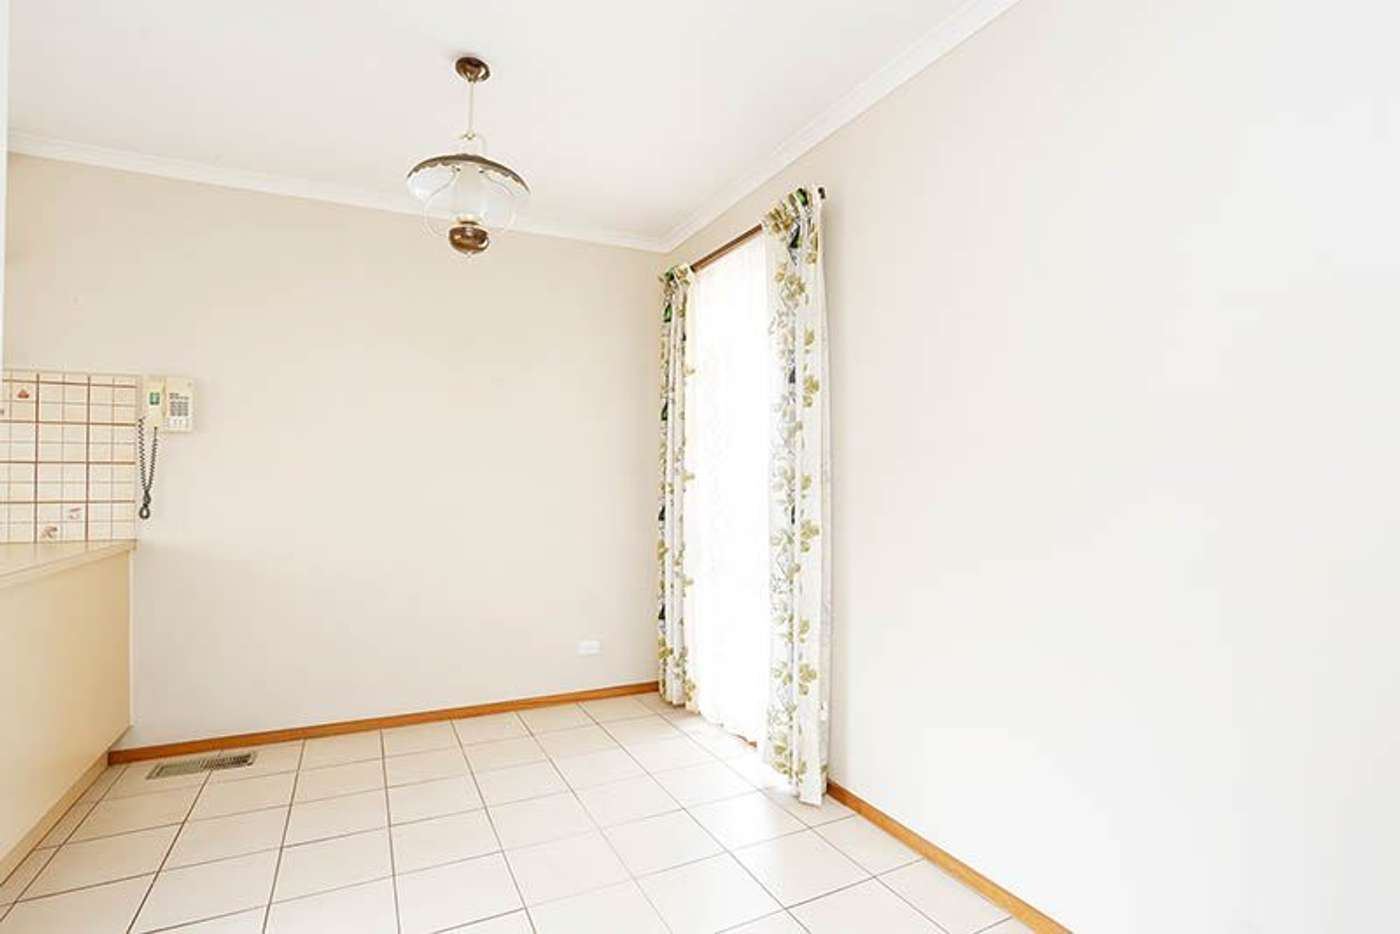 Seventh view of Homely unit listing, 2/15 Doynton Parade, Mount Waverley VIC 3149